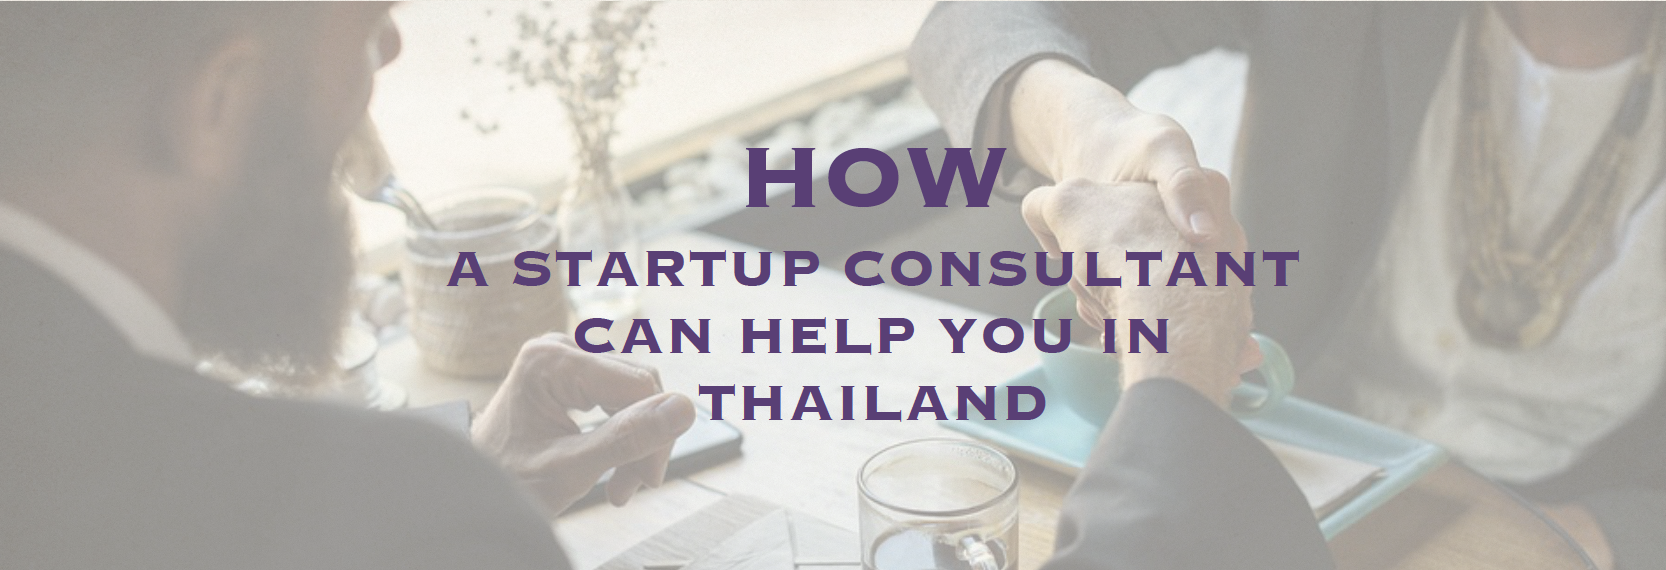 How can a Startup Consultant help you in Thailand?